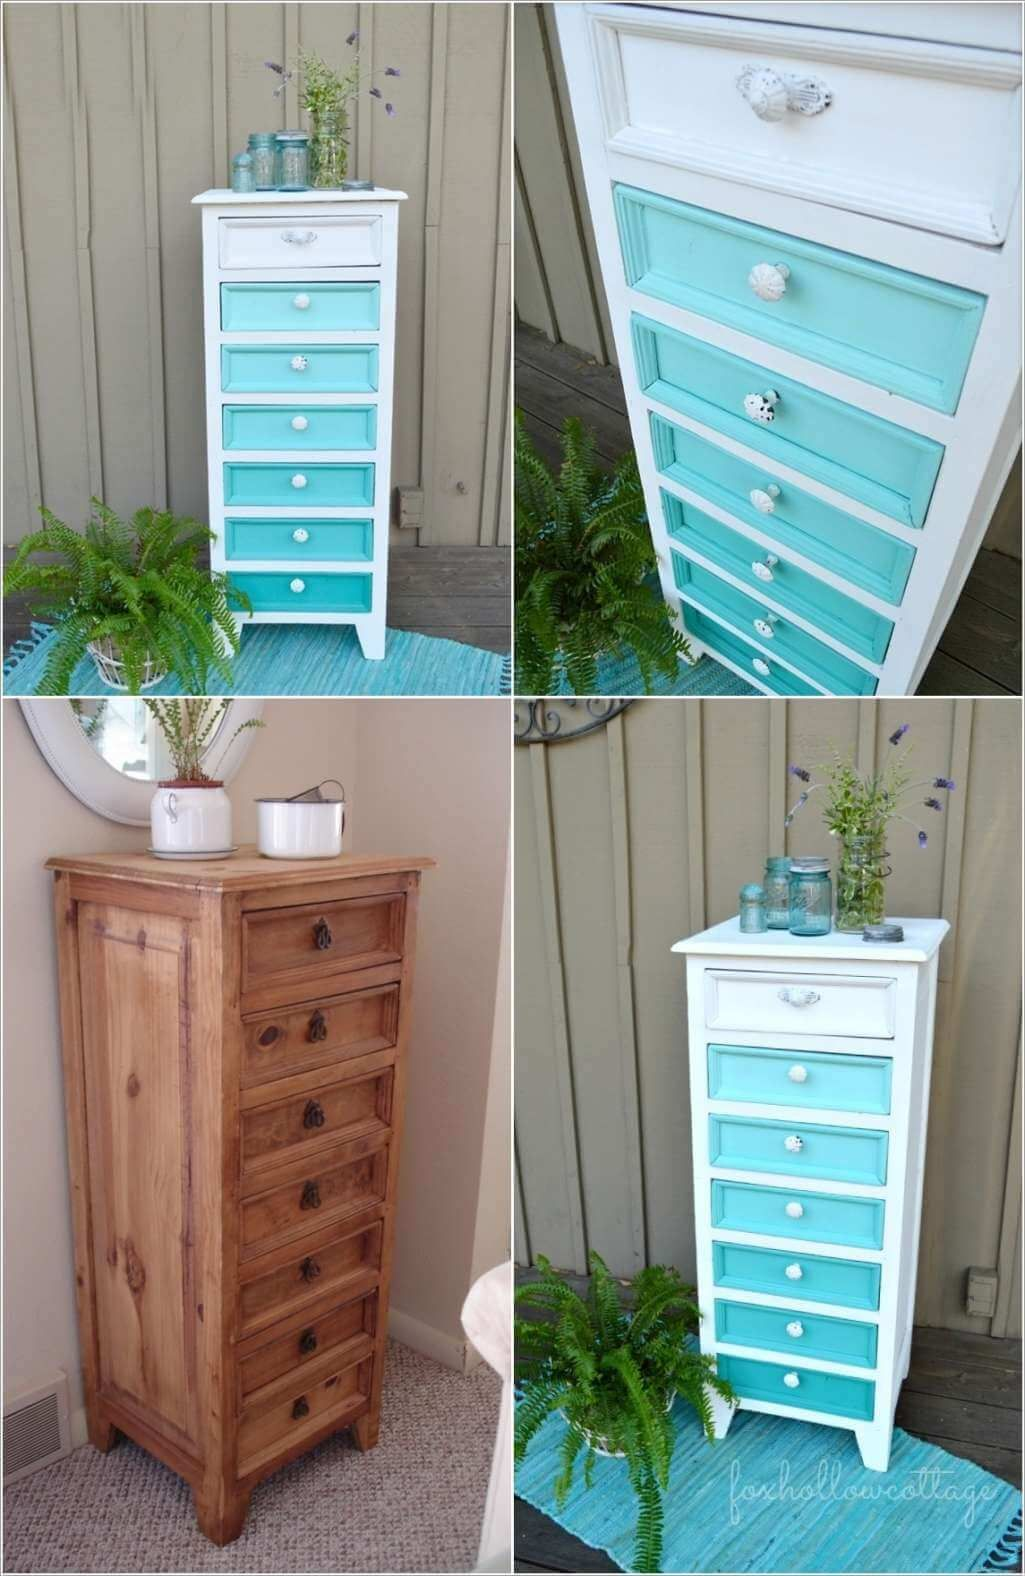 Fox Hollow Cottage Aqua Ombre Painted Furniture Makeover. A popular pin tutorial for using turquoise and white paint to create a custom finish to refresh an old piece of furniture.